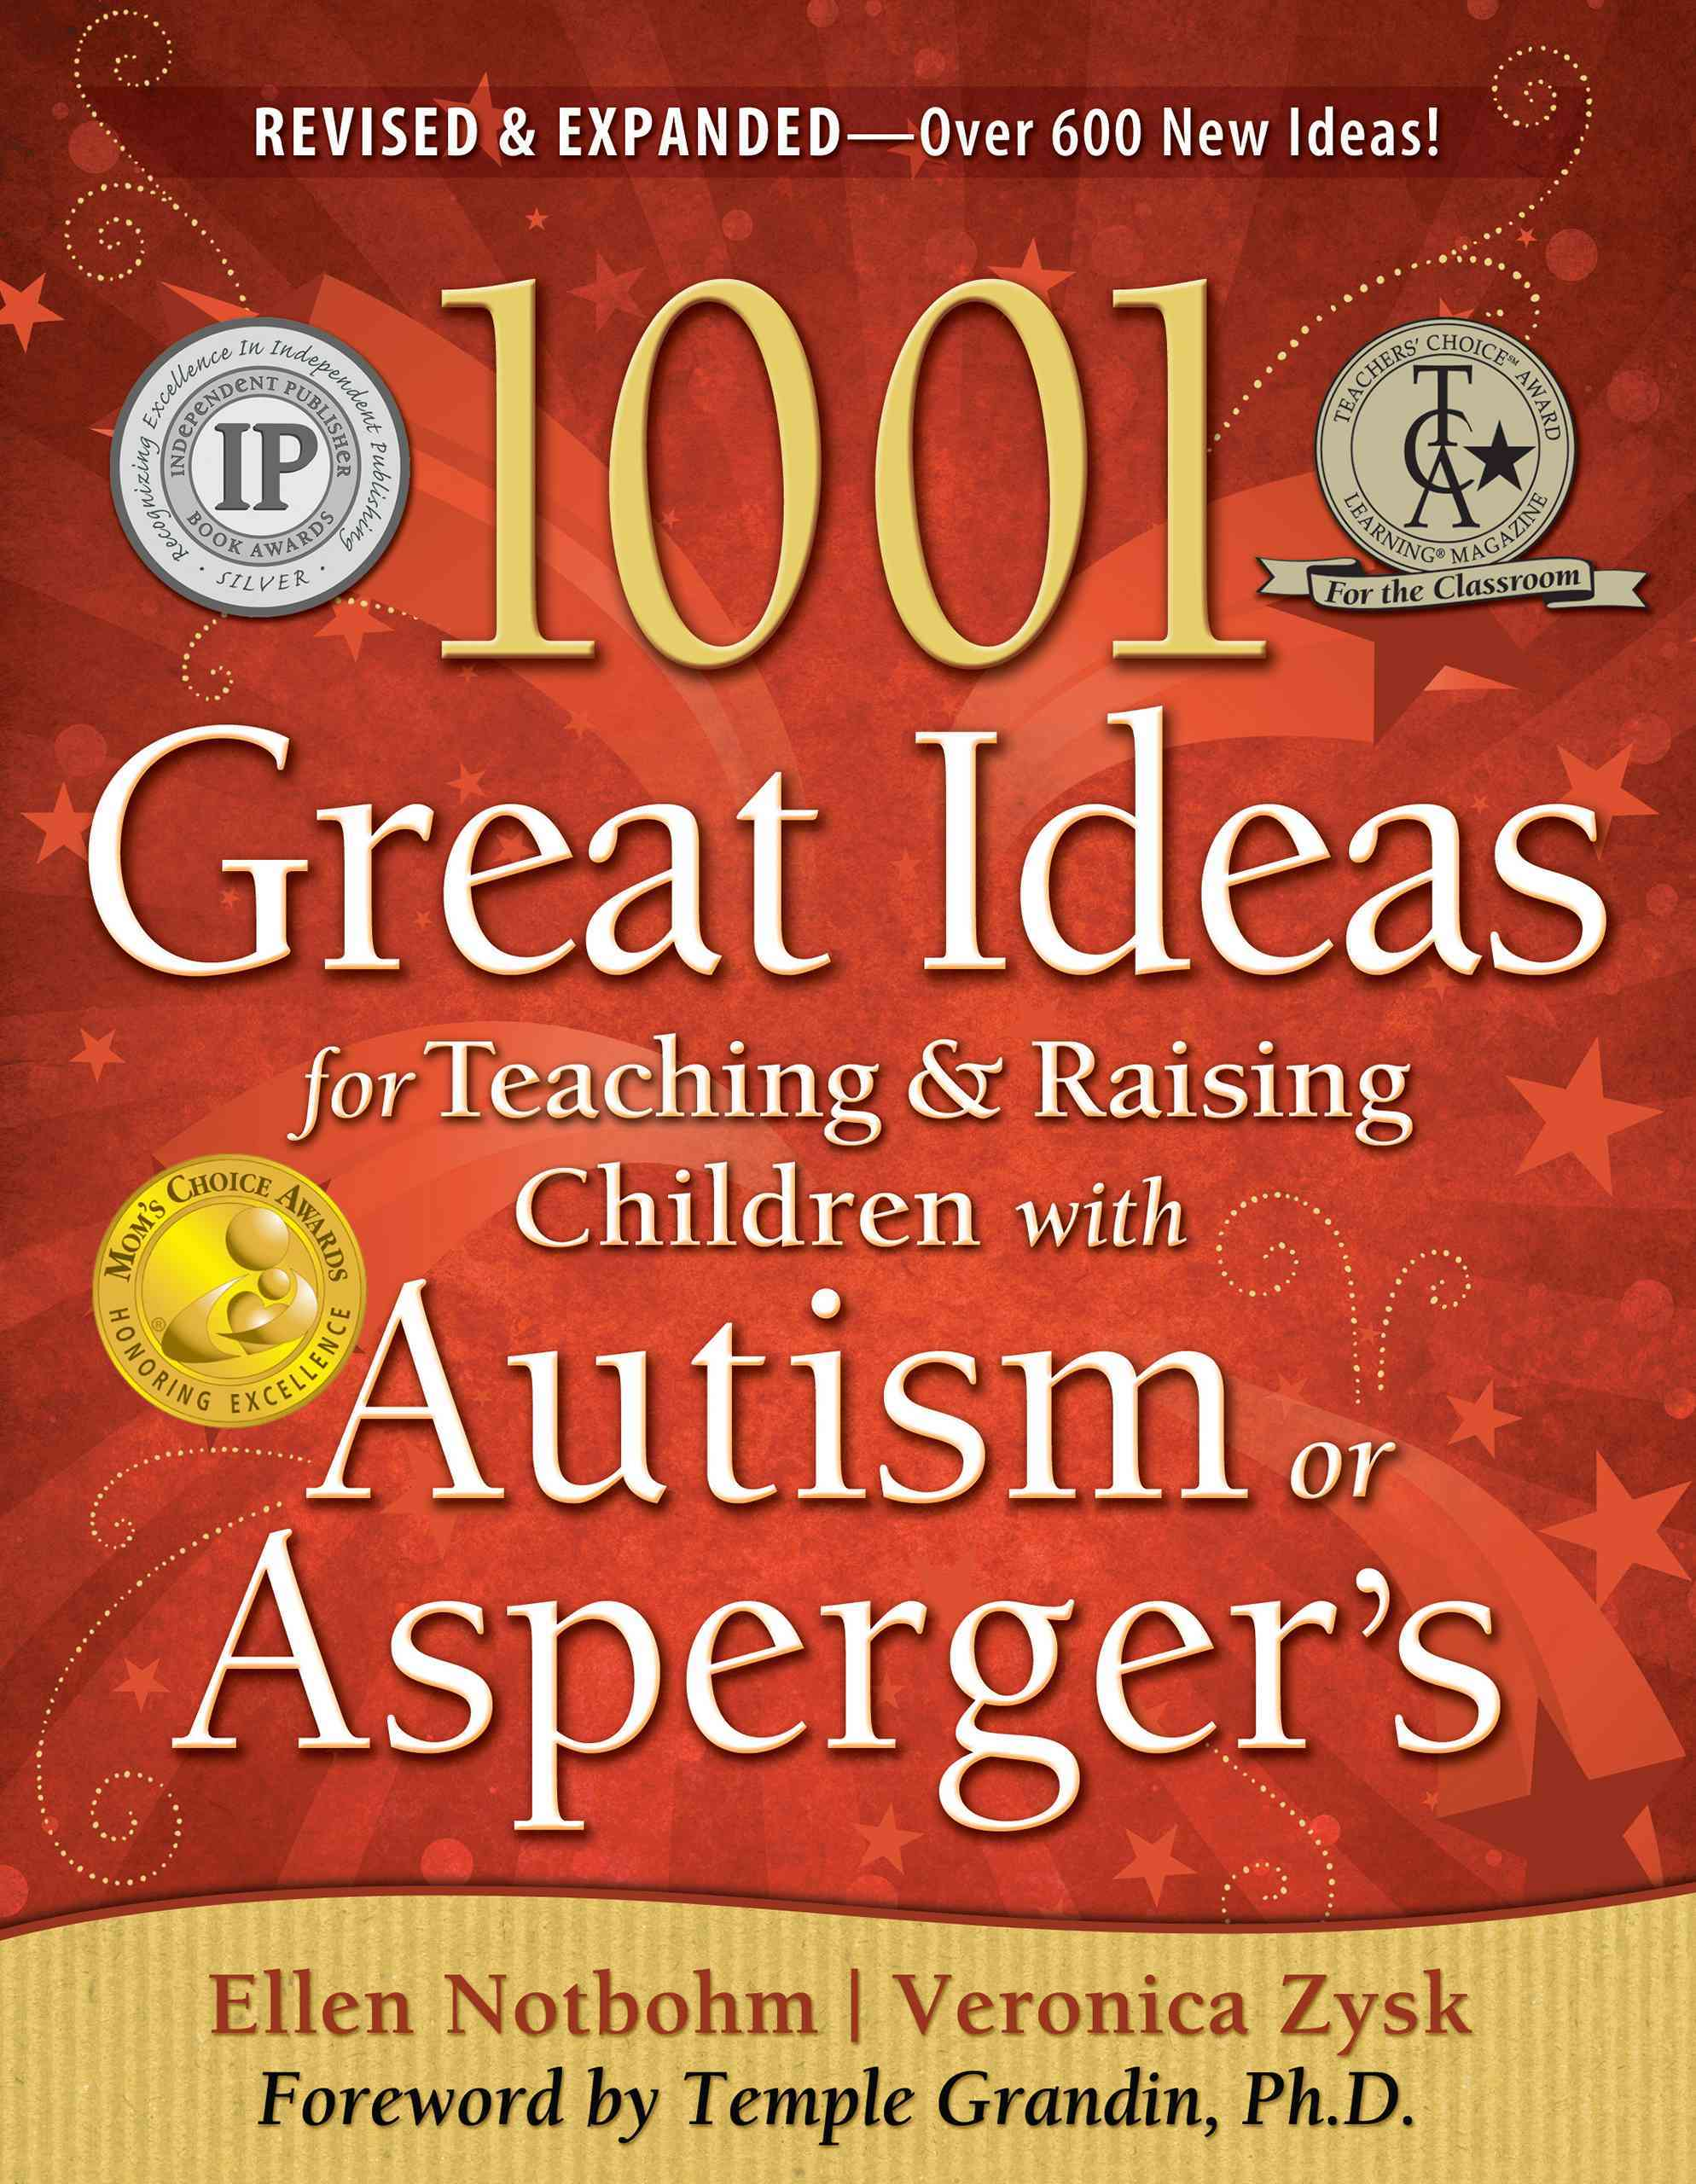 1001 Great Ideas for Teaching & Raising Children With Autism or Asperger's (Paperback)